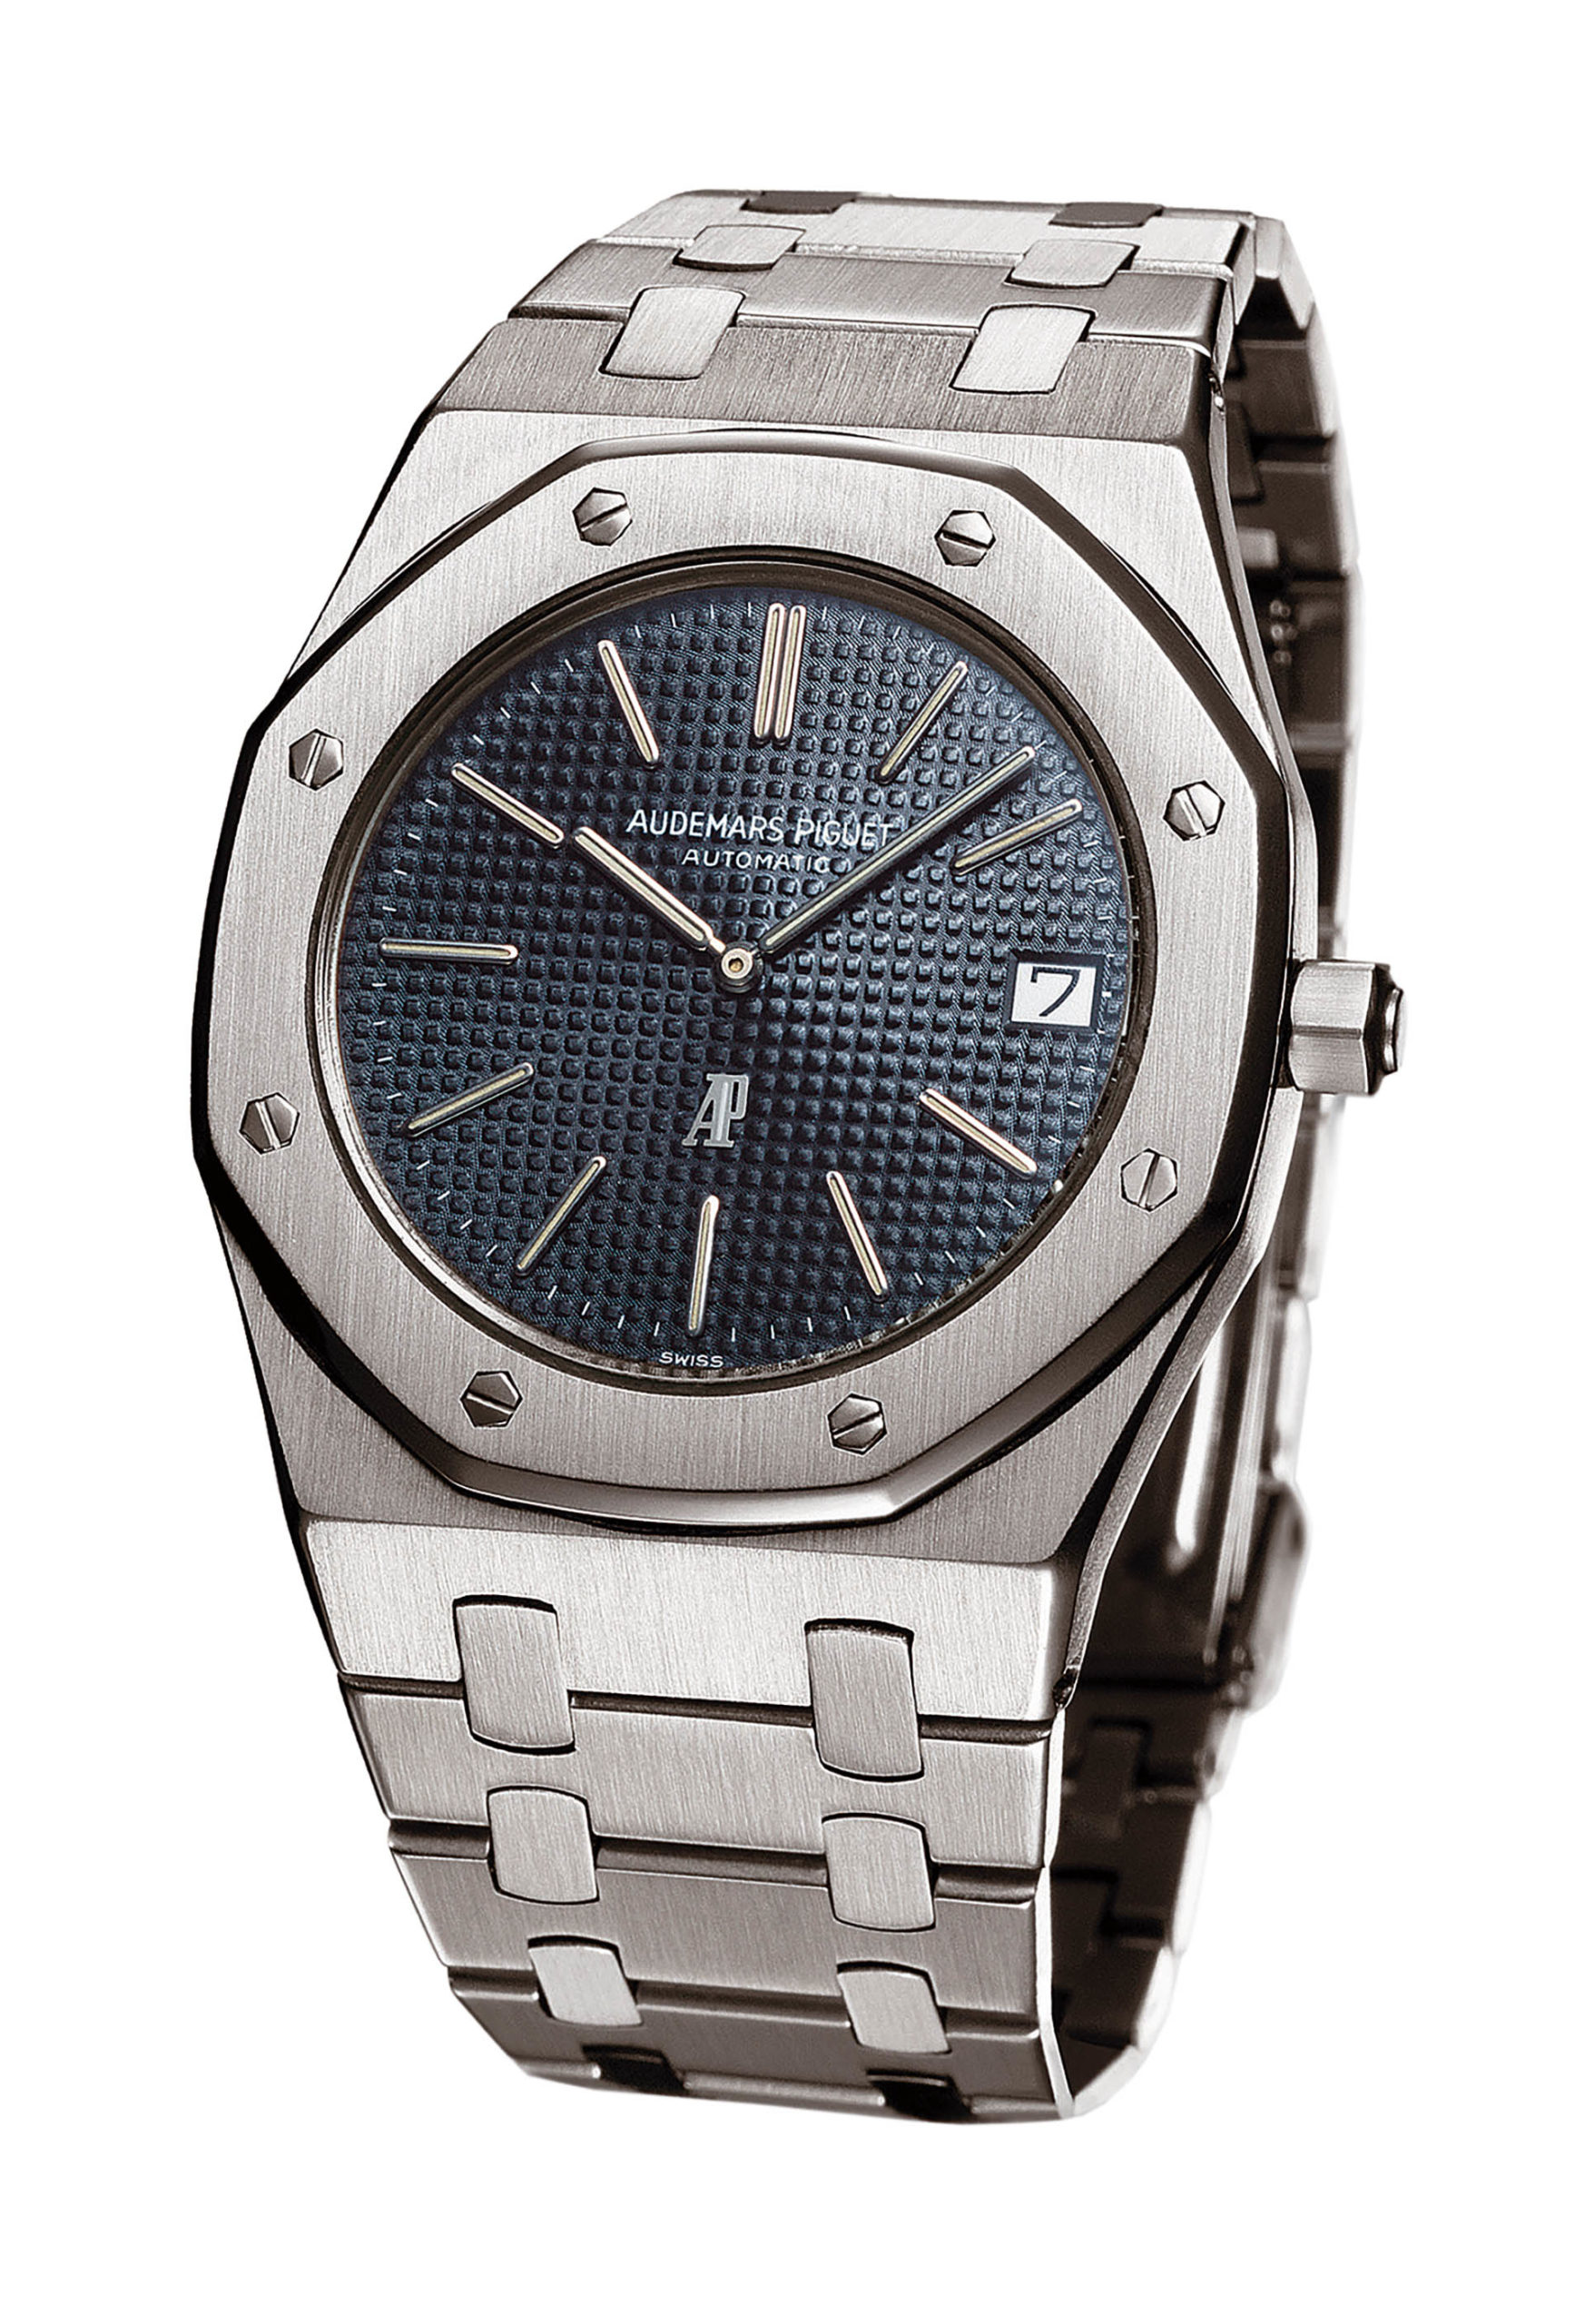 Royal Oak von Audemars Piguet